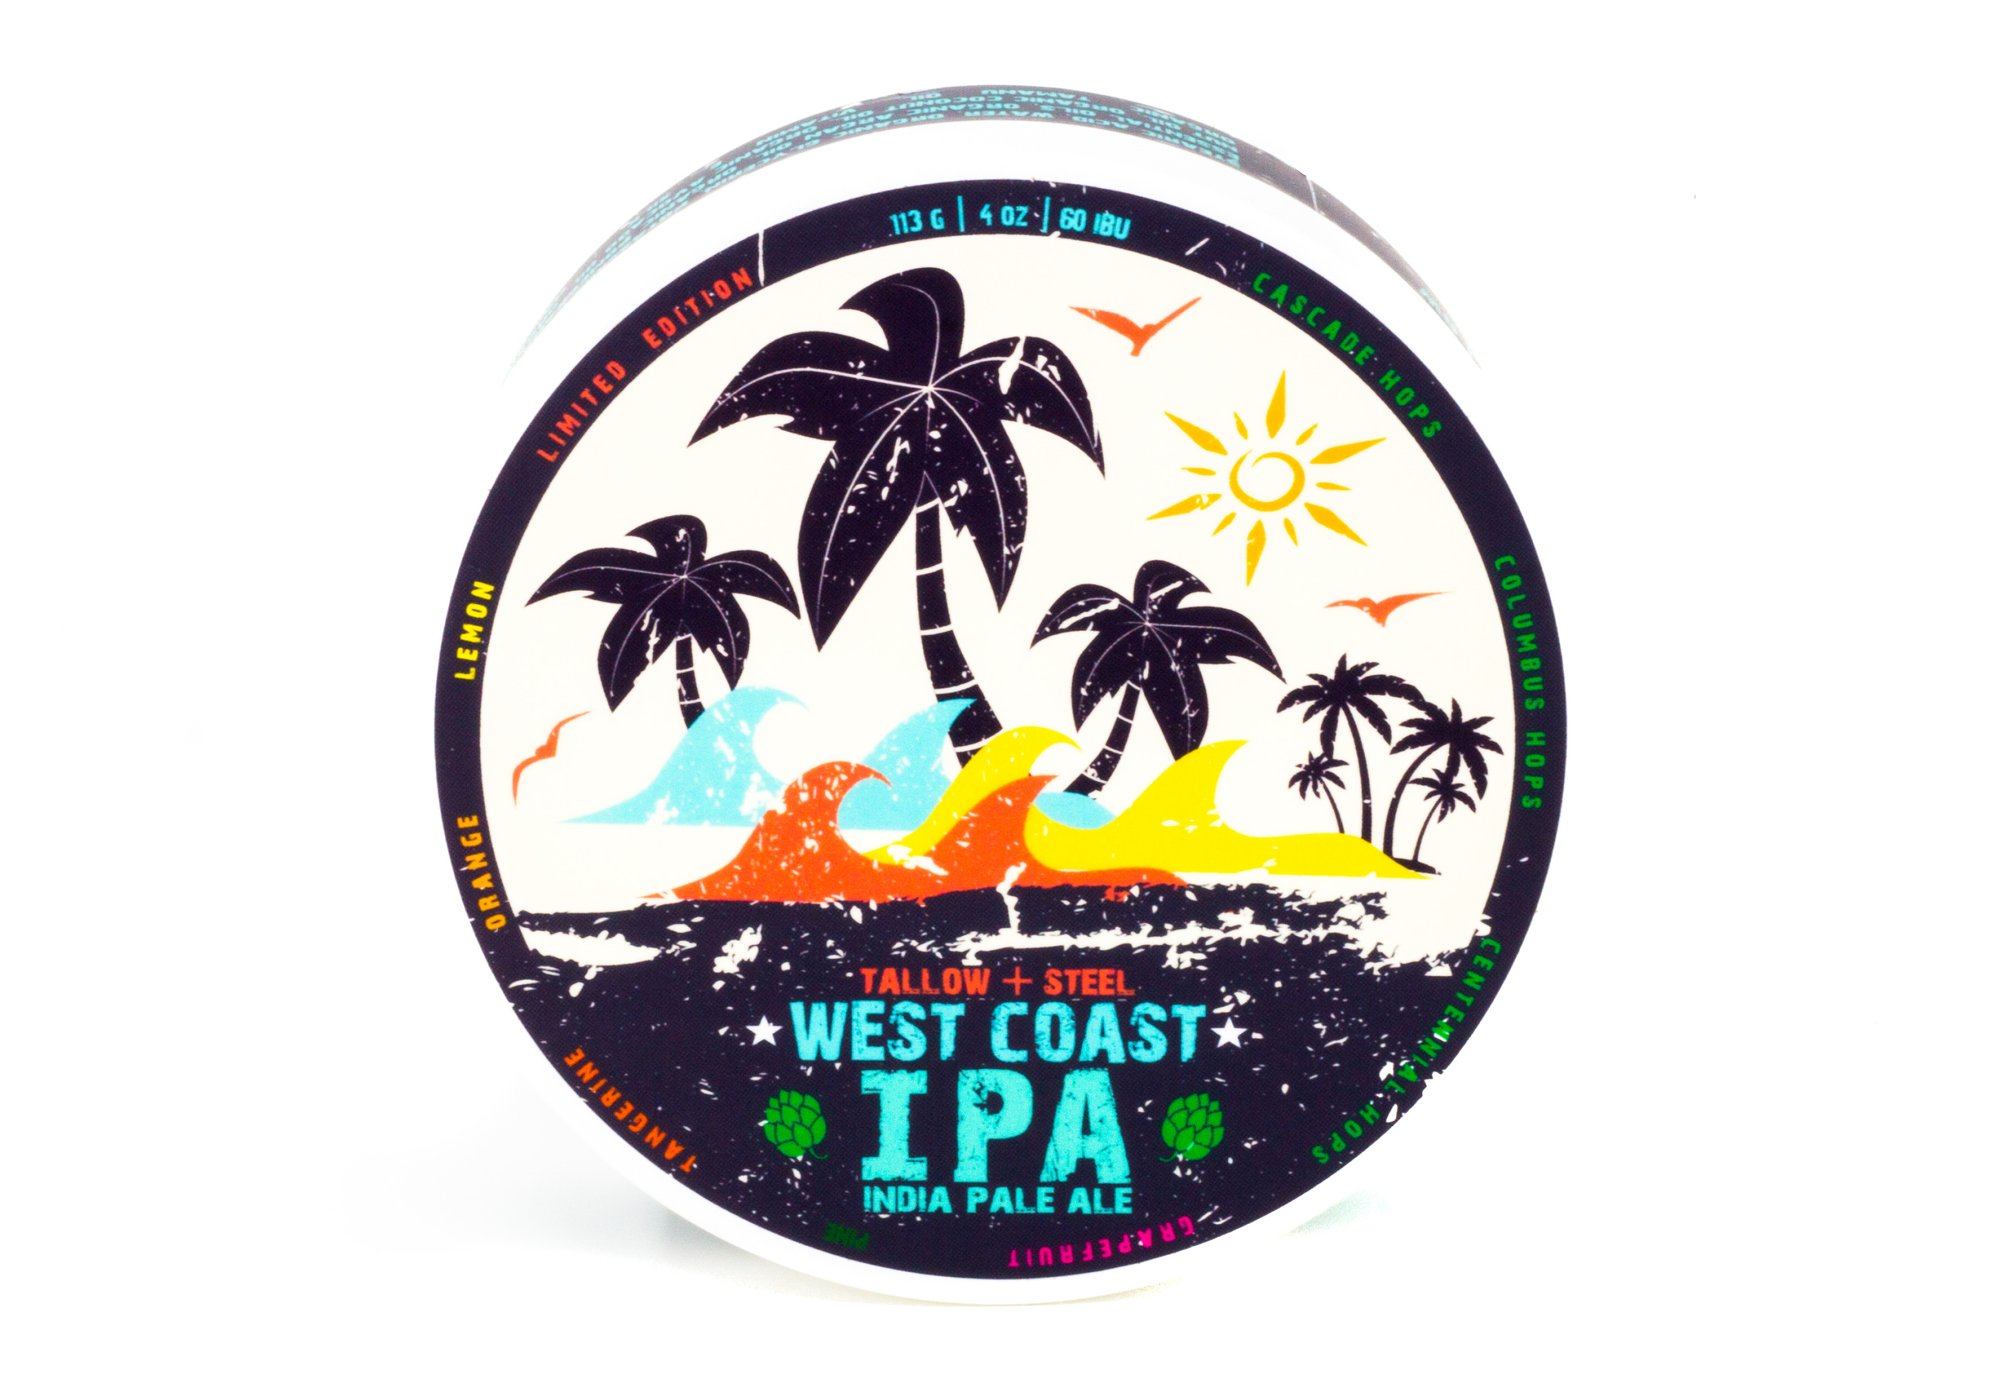 Tallow + Steel - West Coast IPA - Soap image